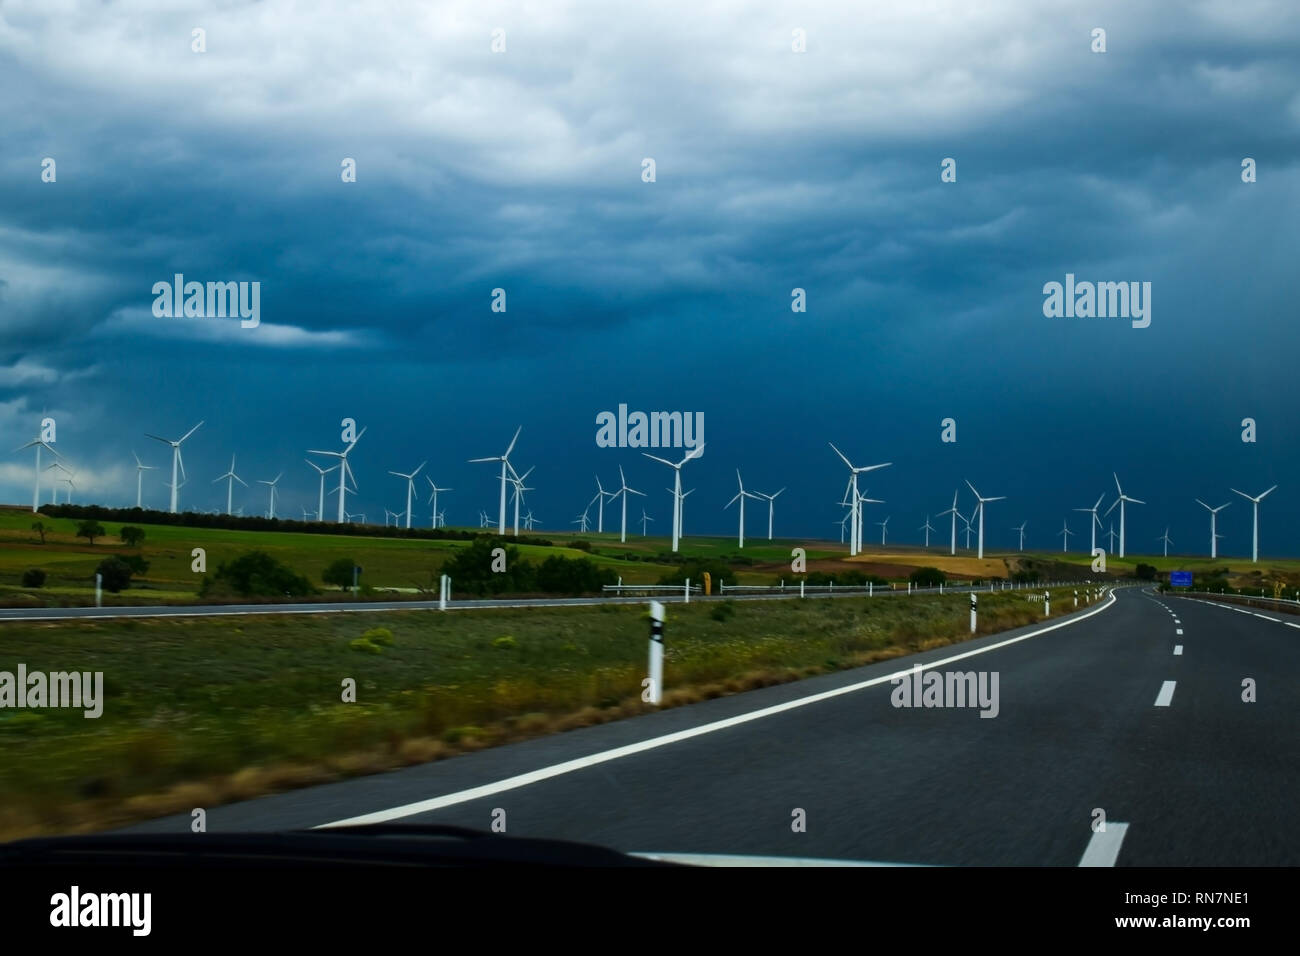 Windmill turbines power plant for electricity generation close to road. Environmentally friendly electricity production. - Stock Image